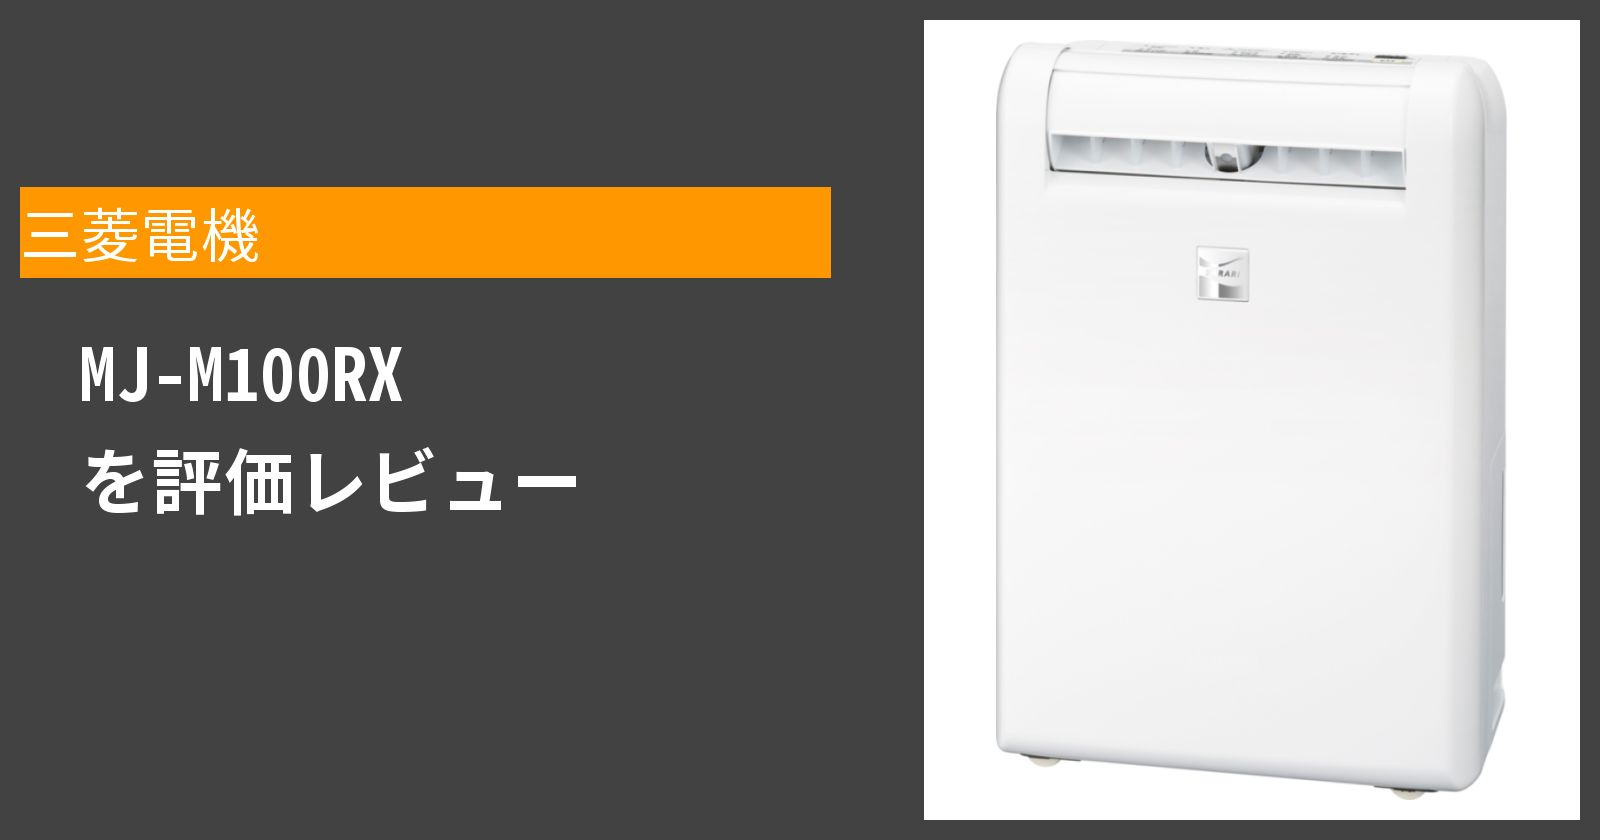 MJ-M100RXを徹底評価